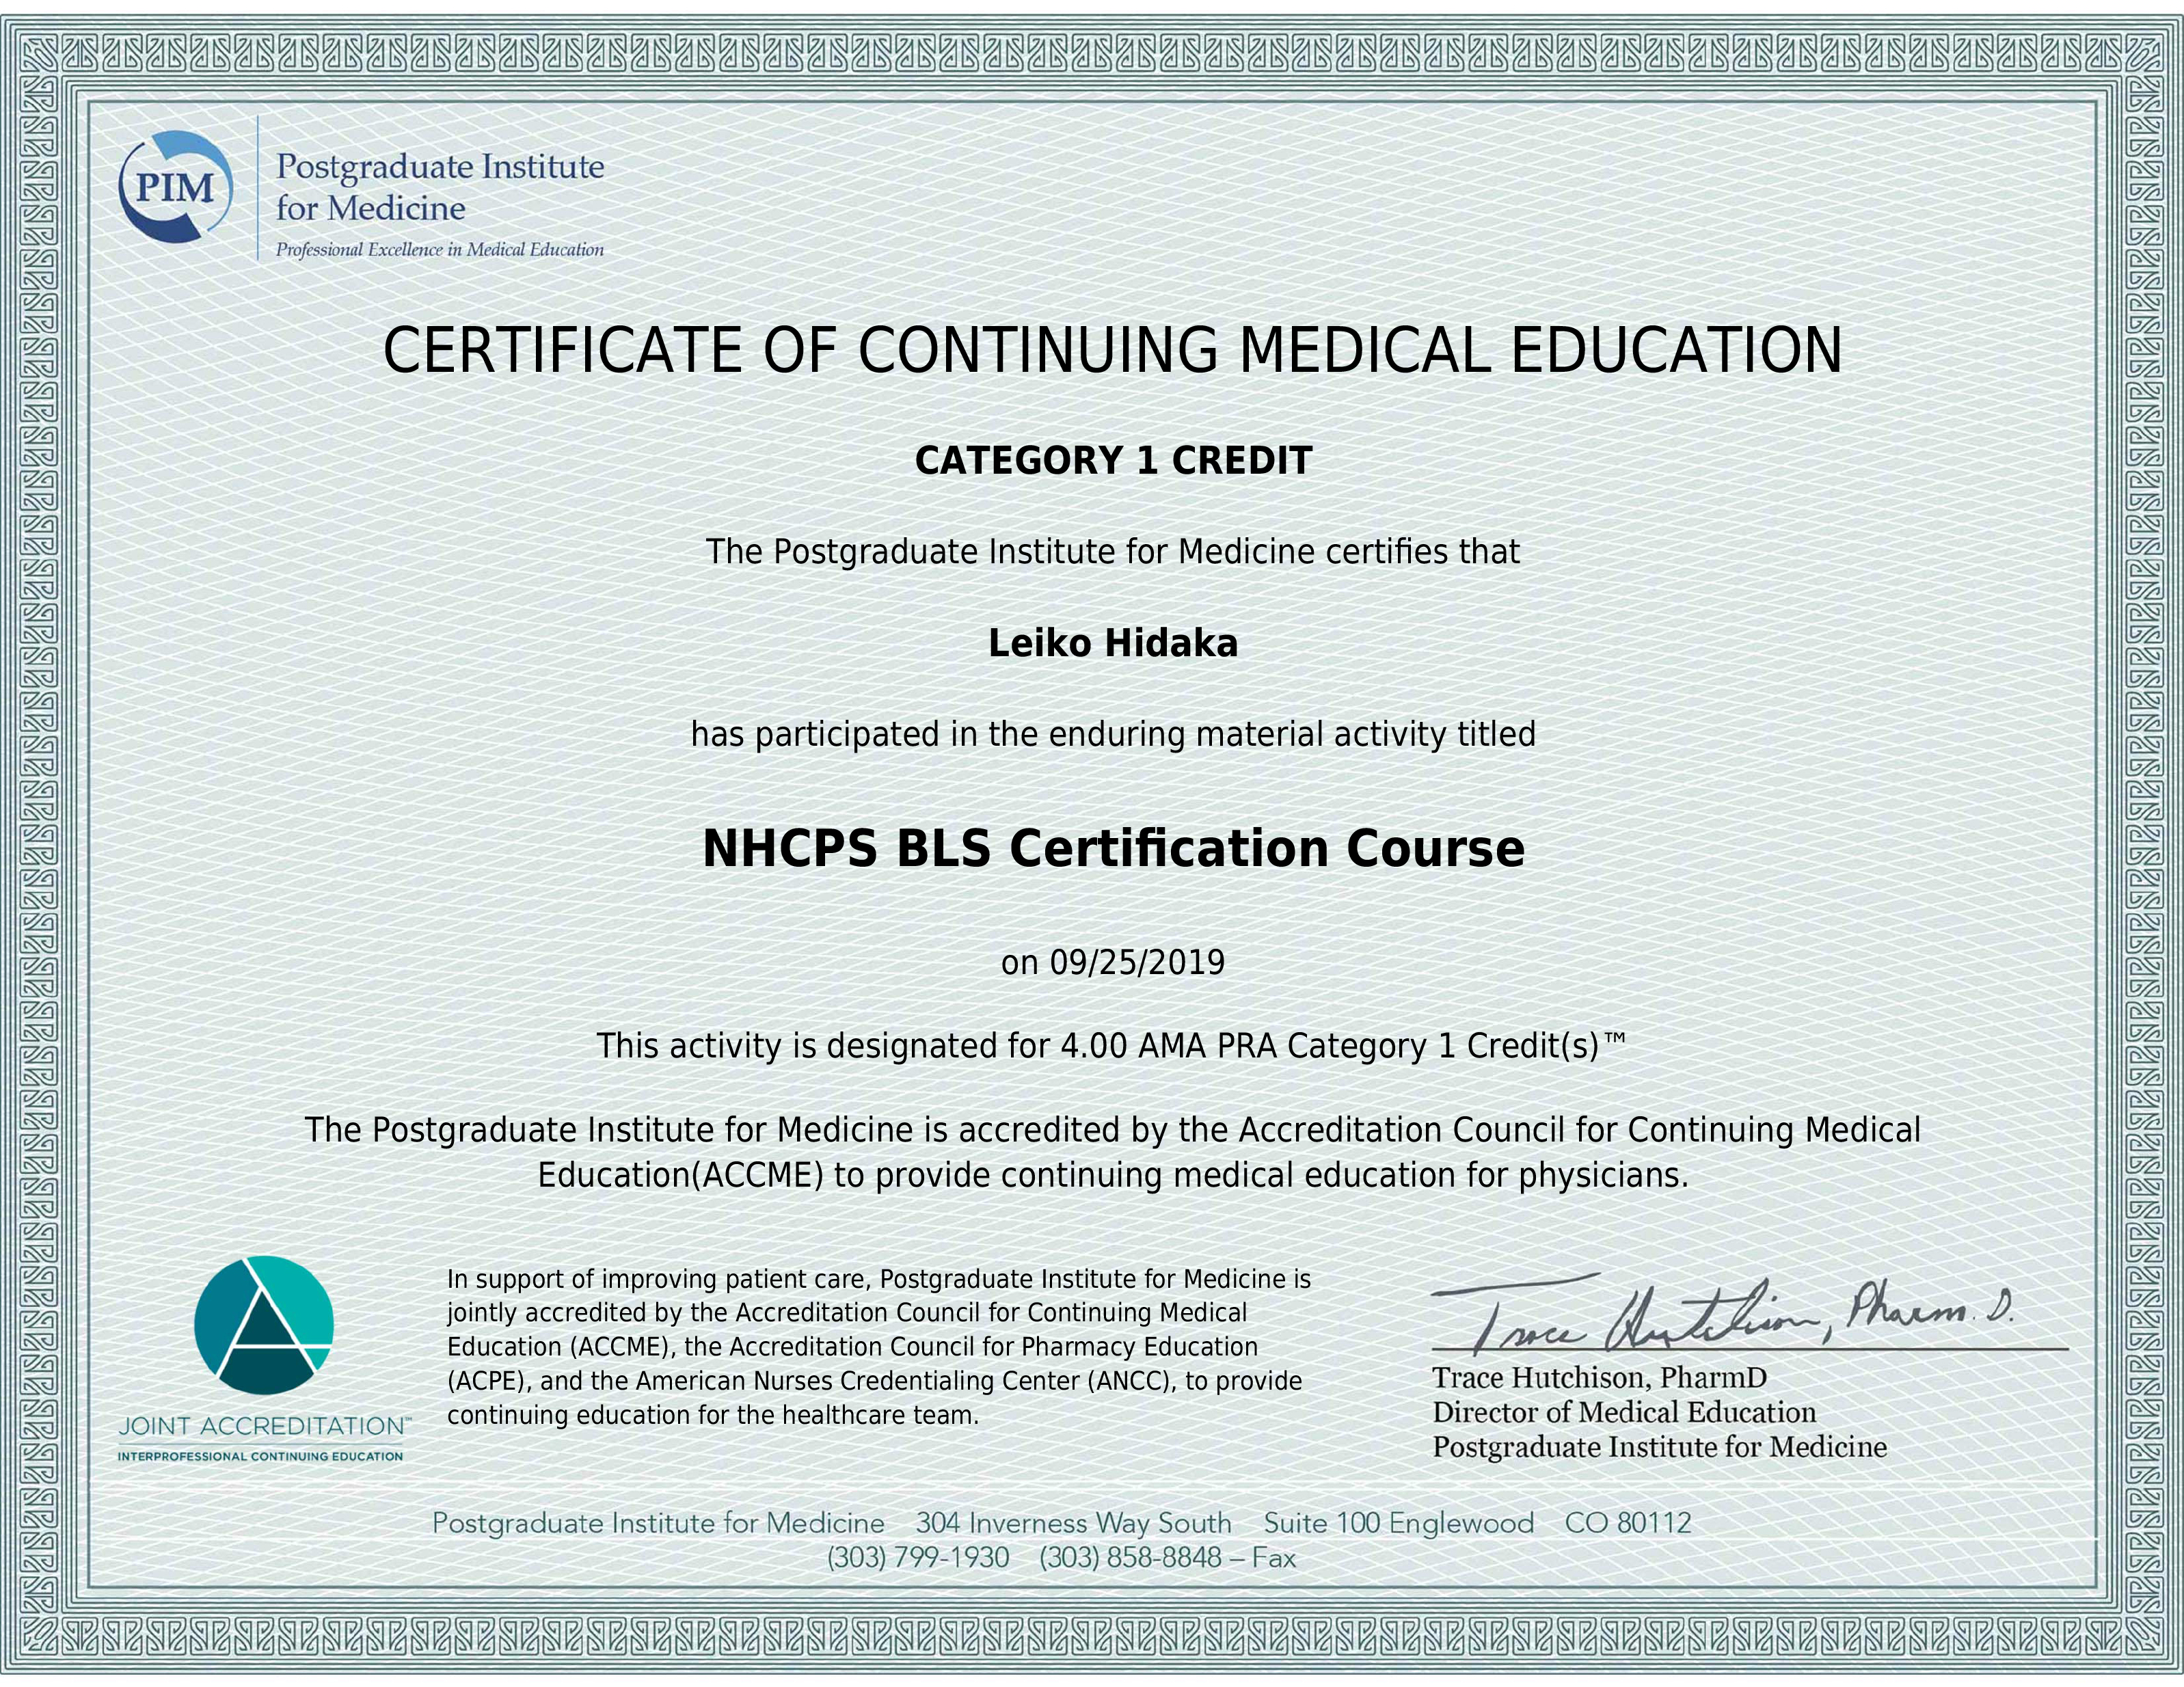 bls-basic-life-support-certification-cou